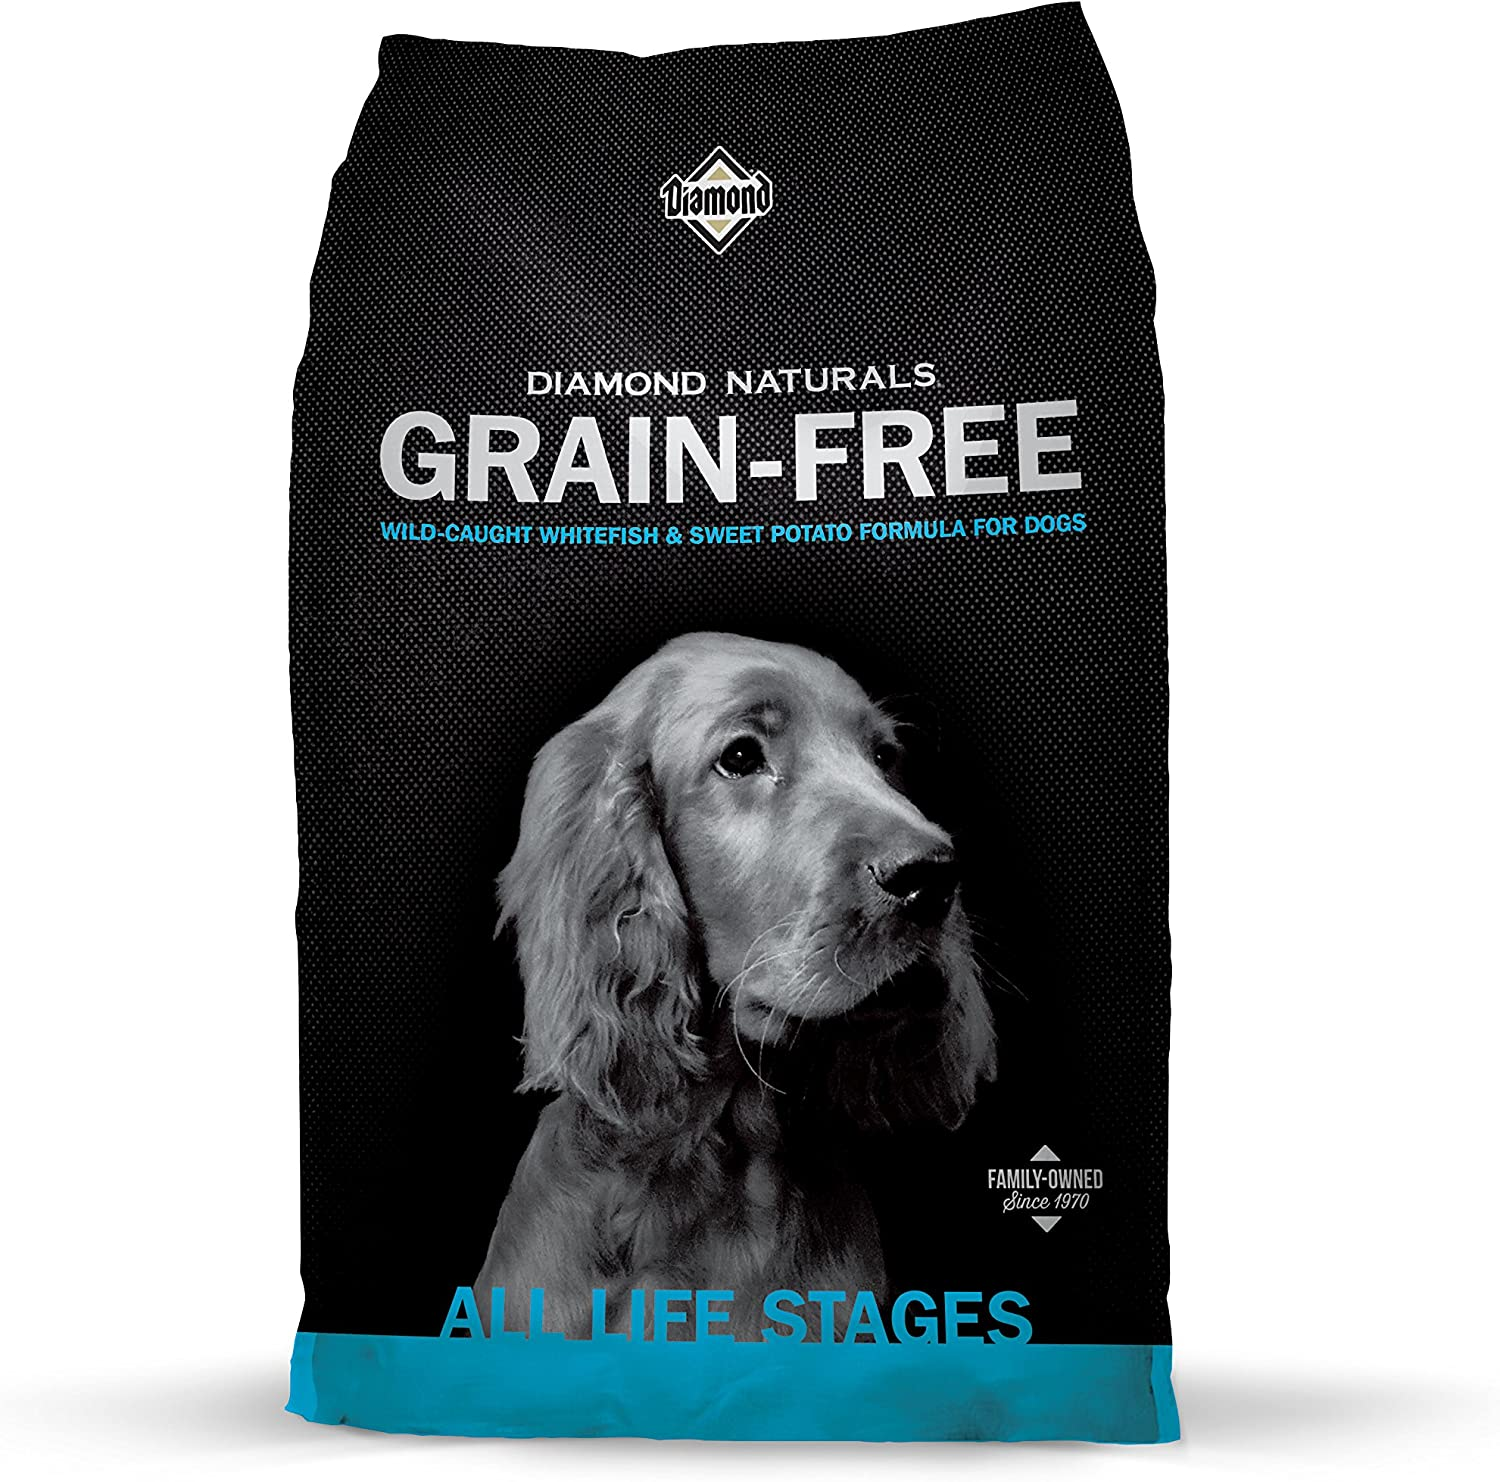 Diamond Naturals Grain Free Real Meat Recipe Premium Dry Dog Food